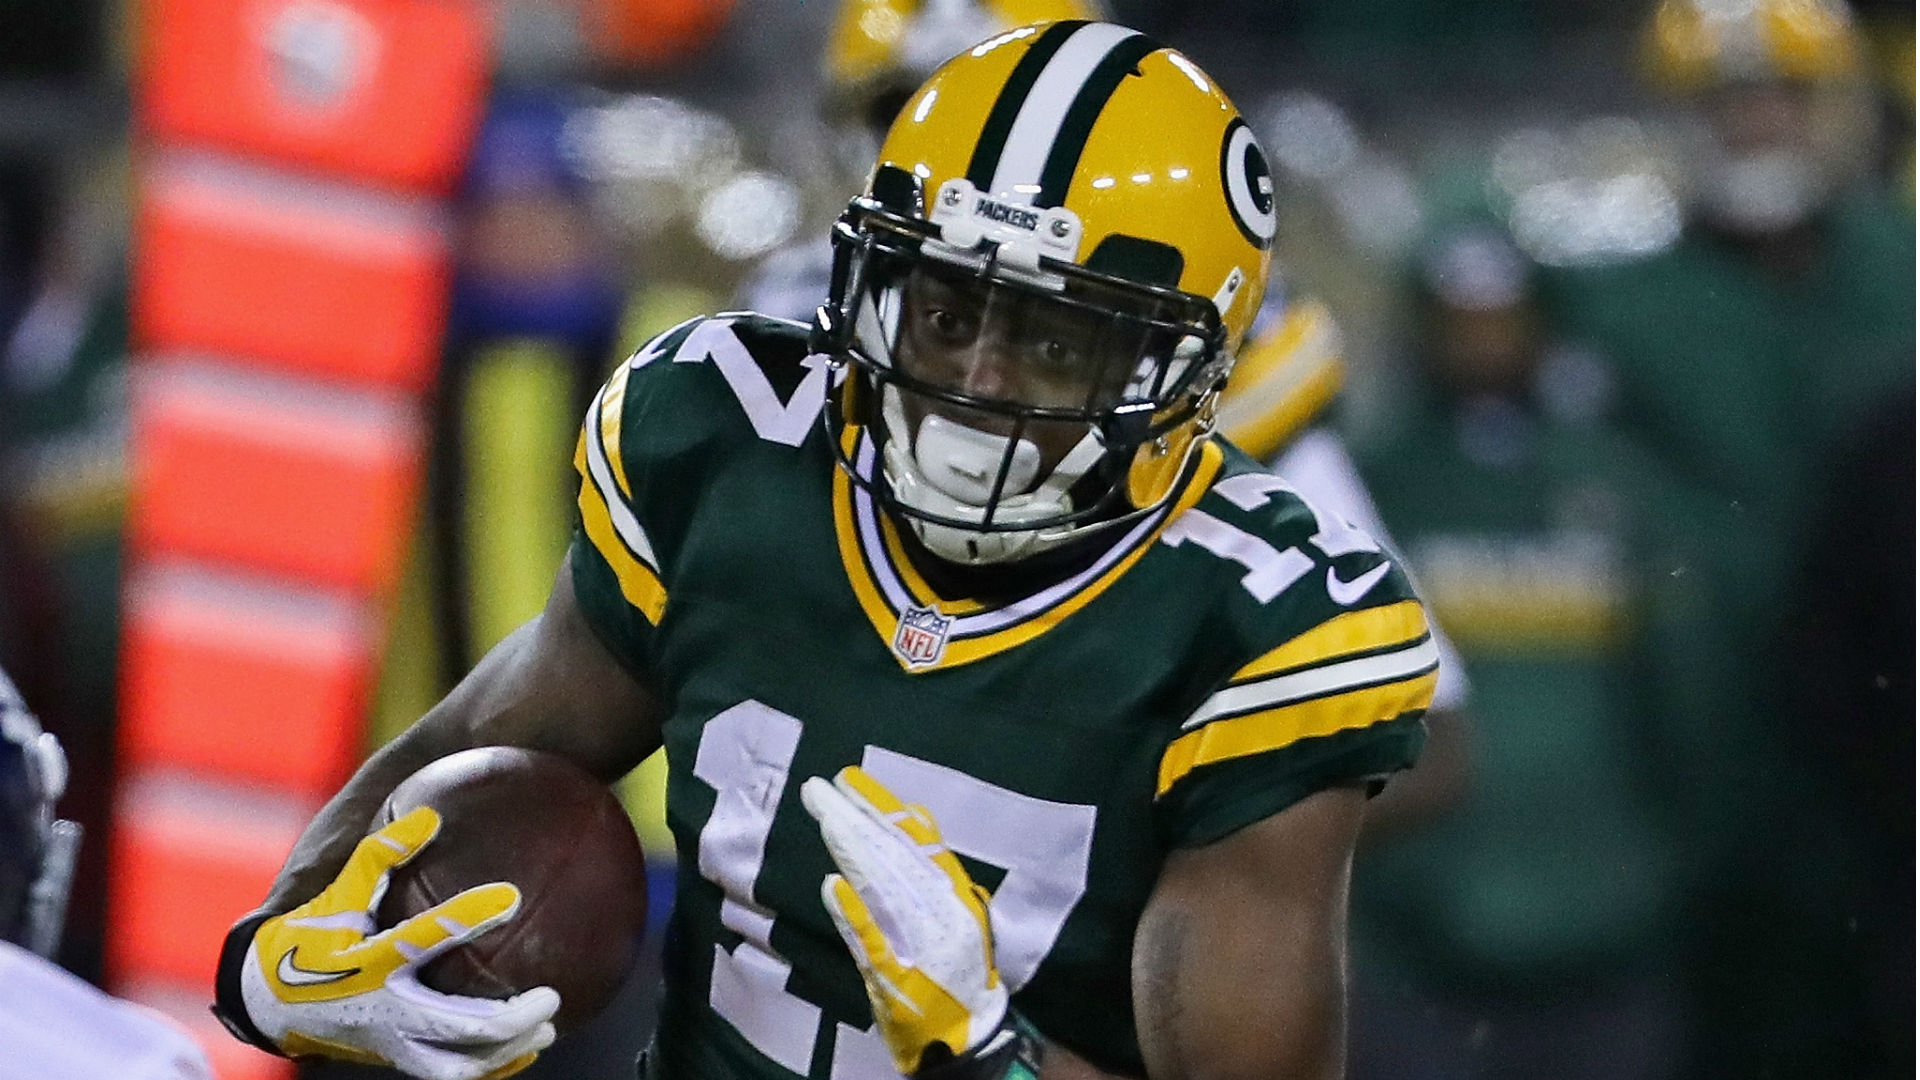 Geronimo Allison: Allison questionable for NFC Championship